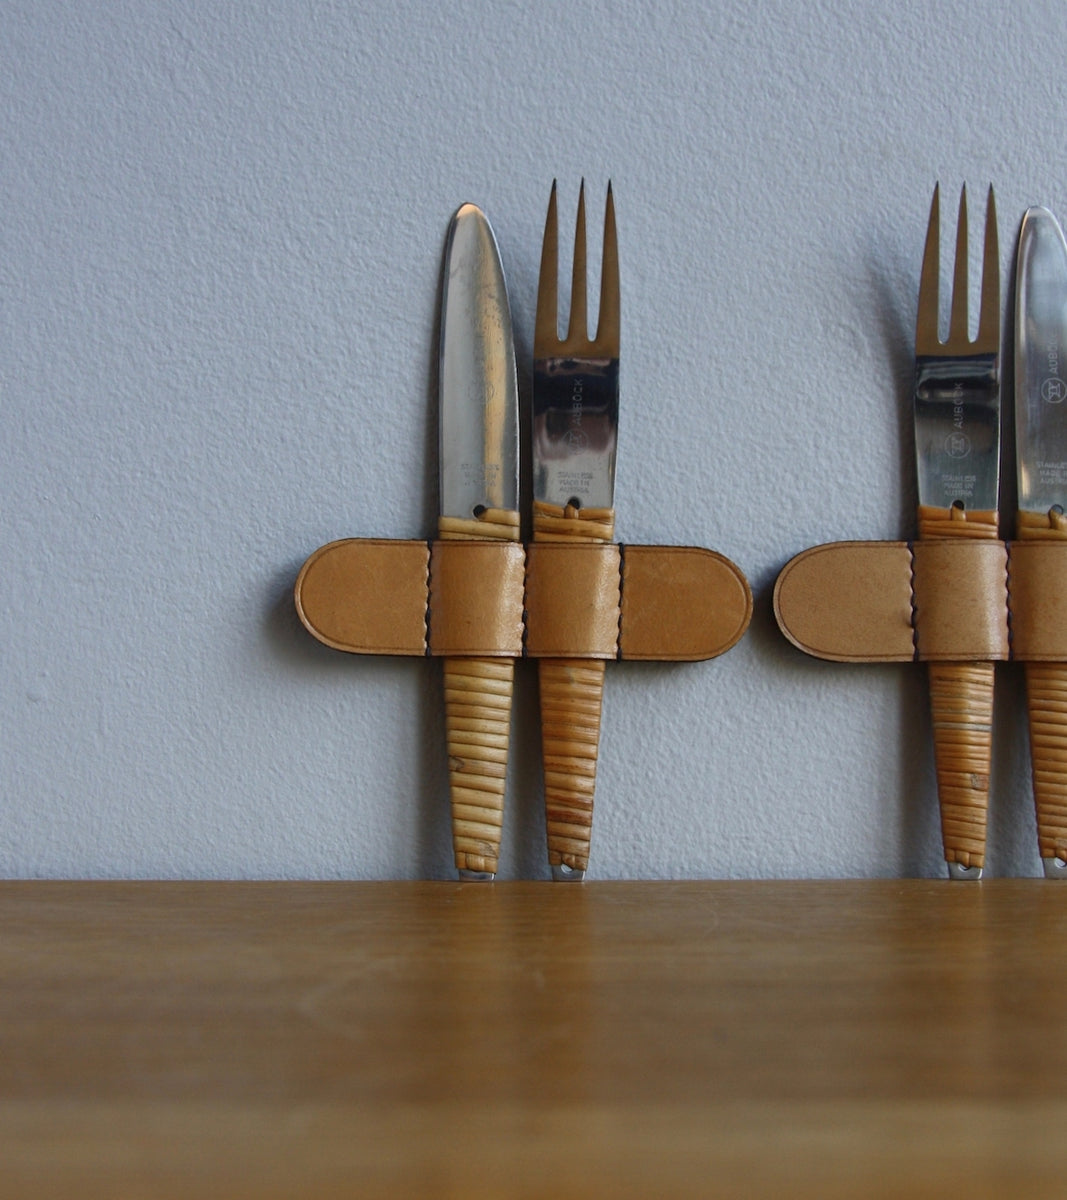 Woven Wicker Covered Two Sets of Knives & Forks, Carl Auböck